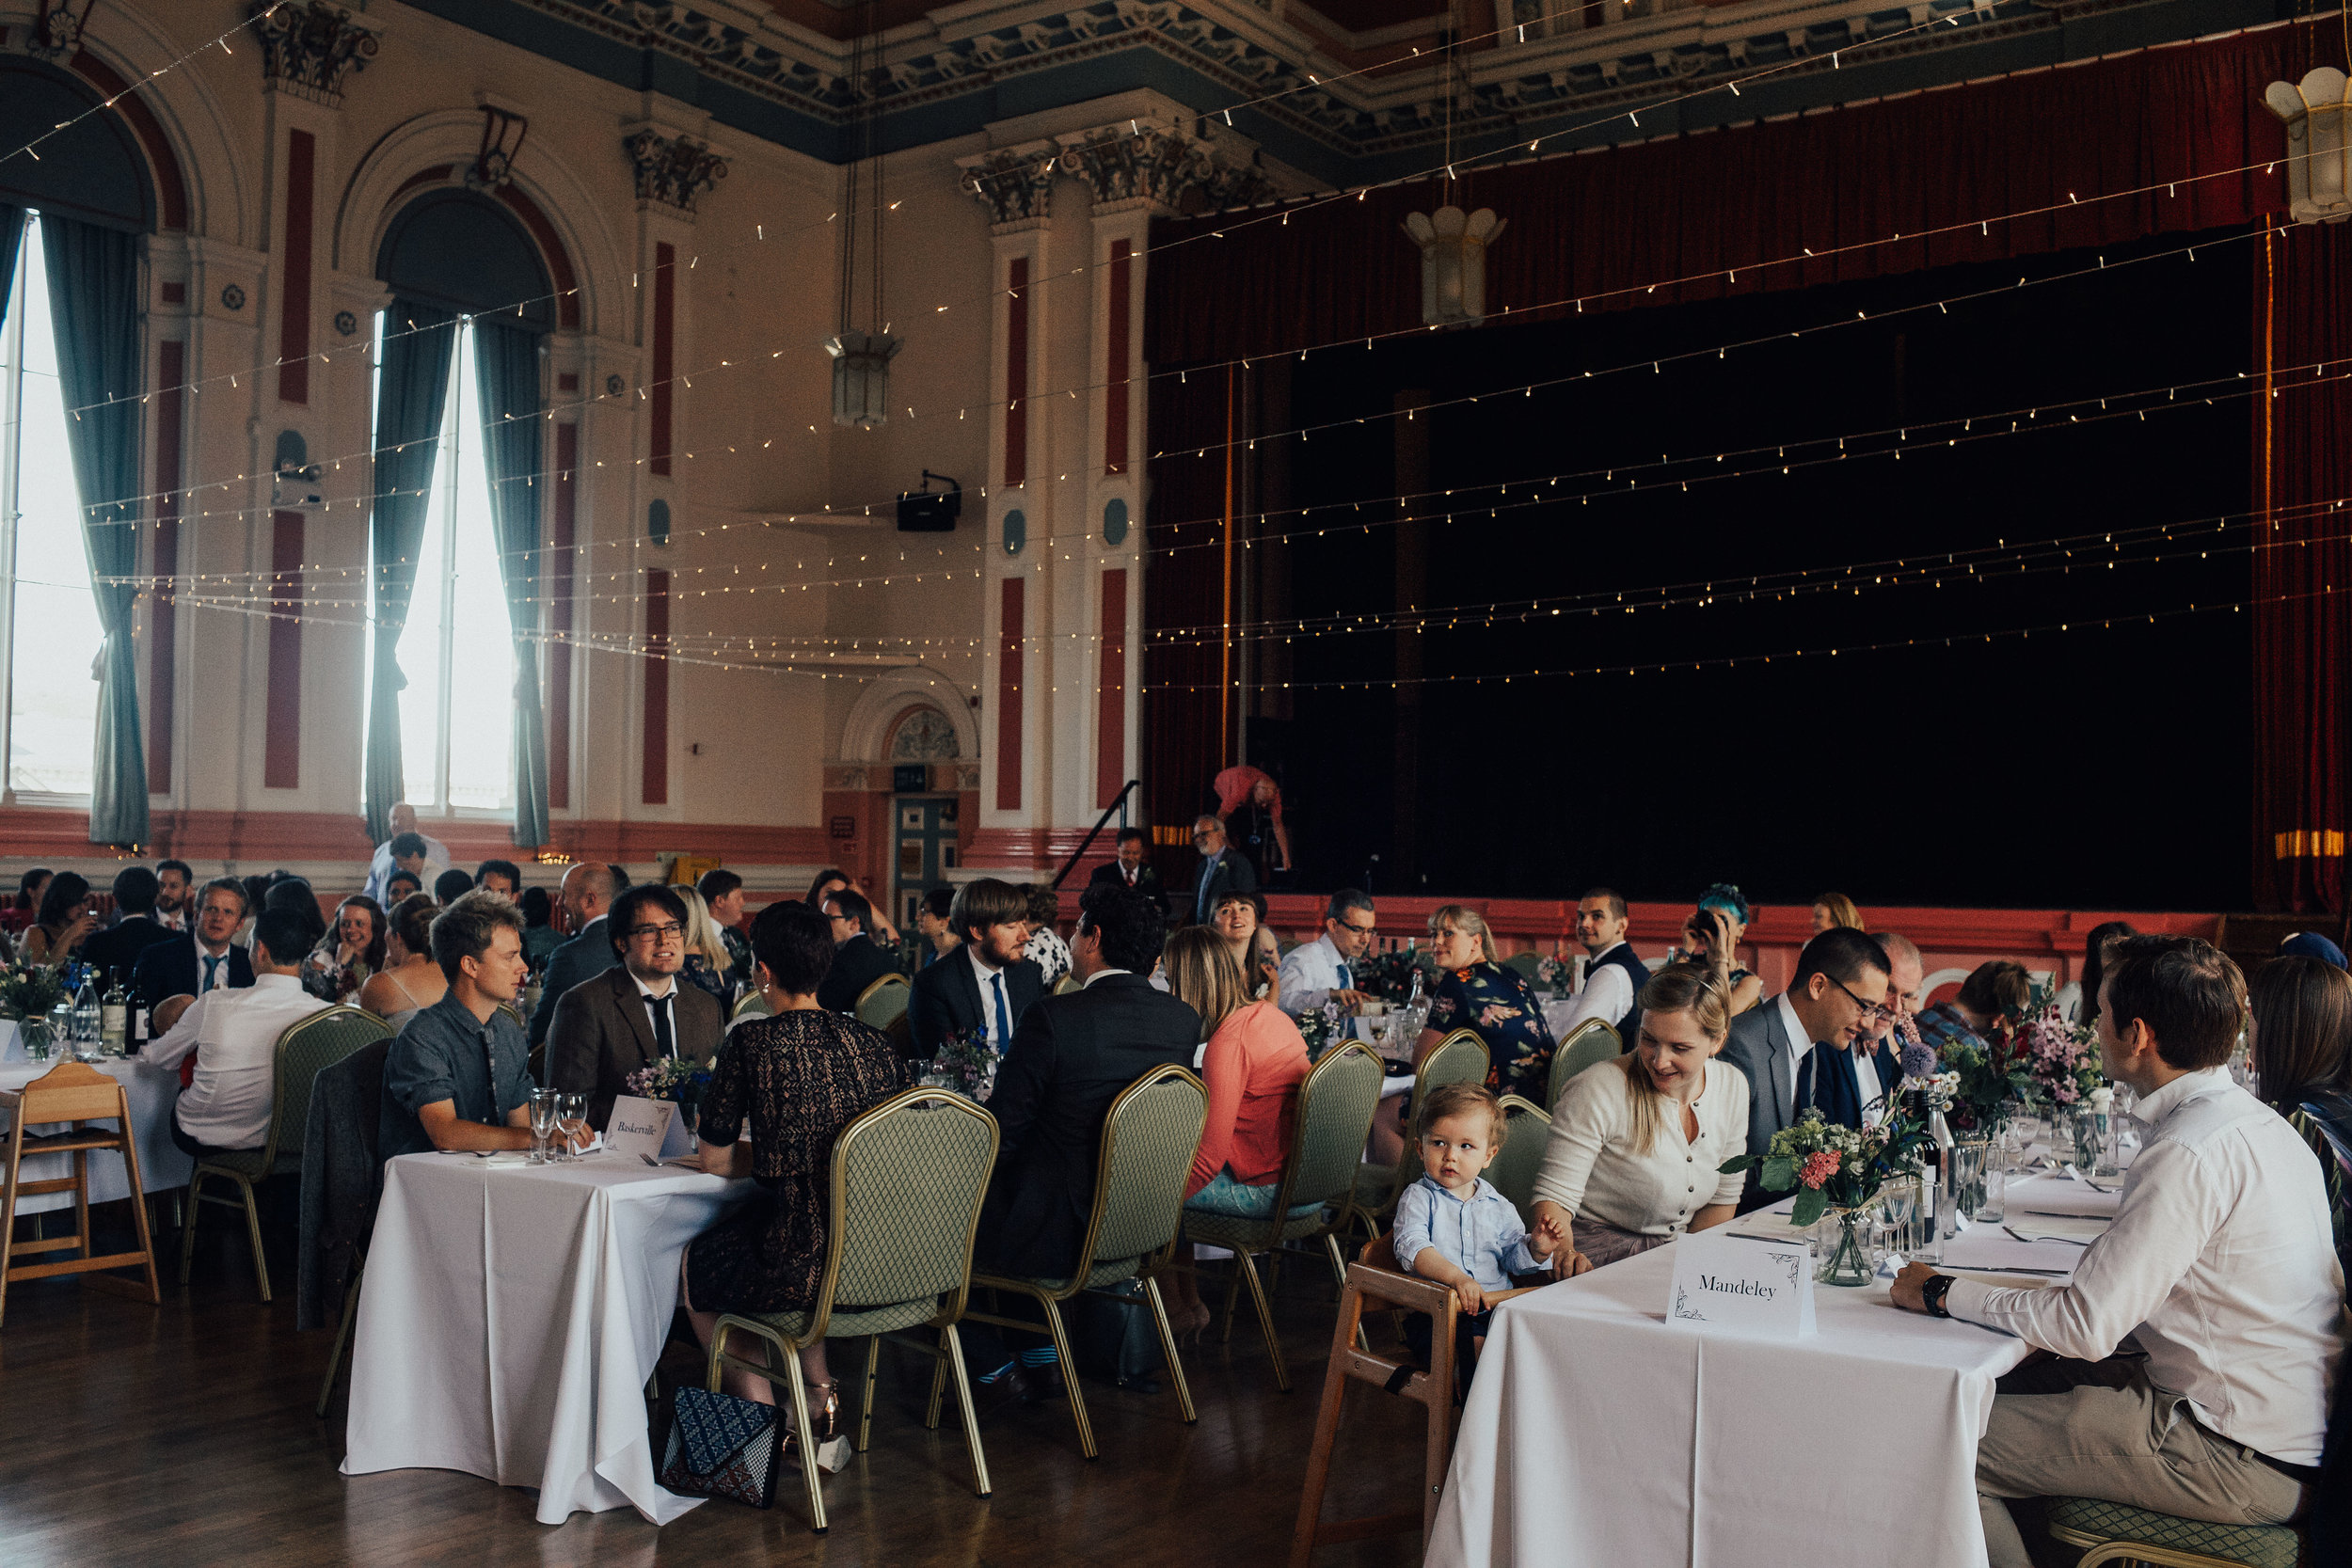 VICTORIA_HALL_SALTAIRE_VINTAGE_YORKSHIRE_WEDDING_PJ_PHILLIPS_PHOTOGRAPHY_82.jpg